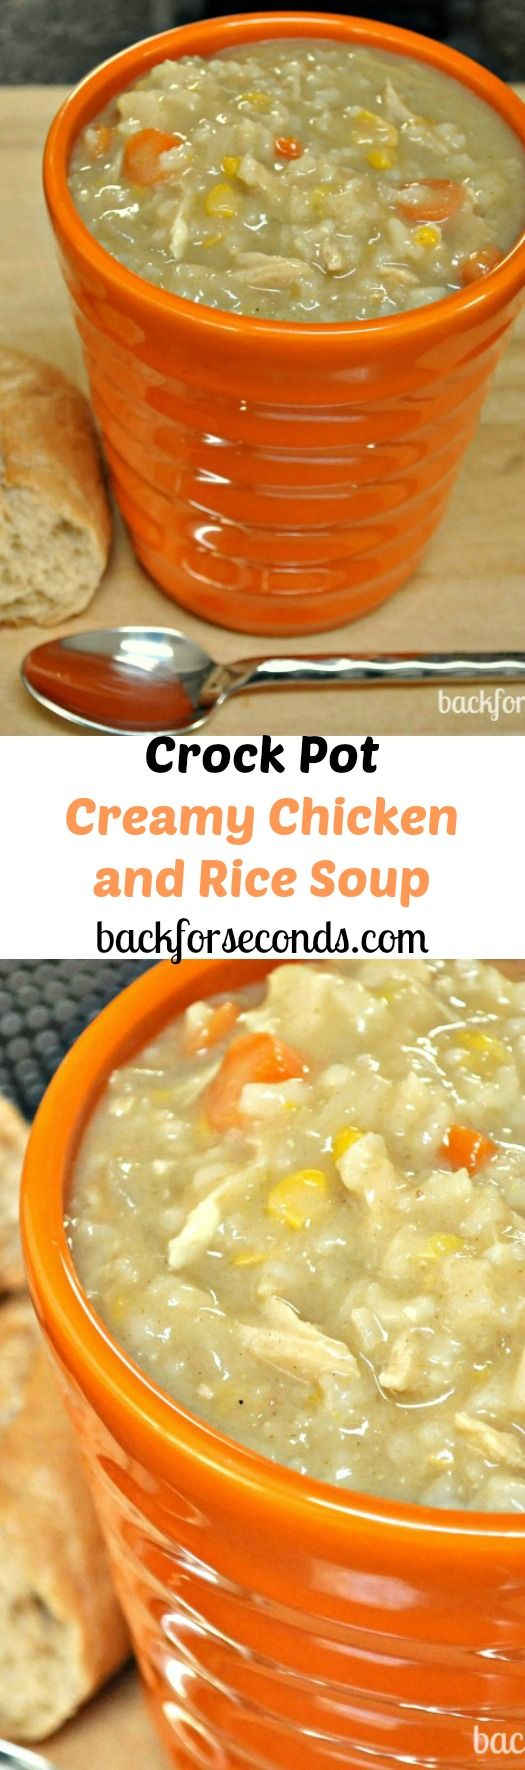 BEST Creamy Chicken and Rice Soup Recipe made in the Crock Pot